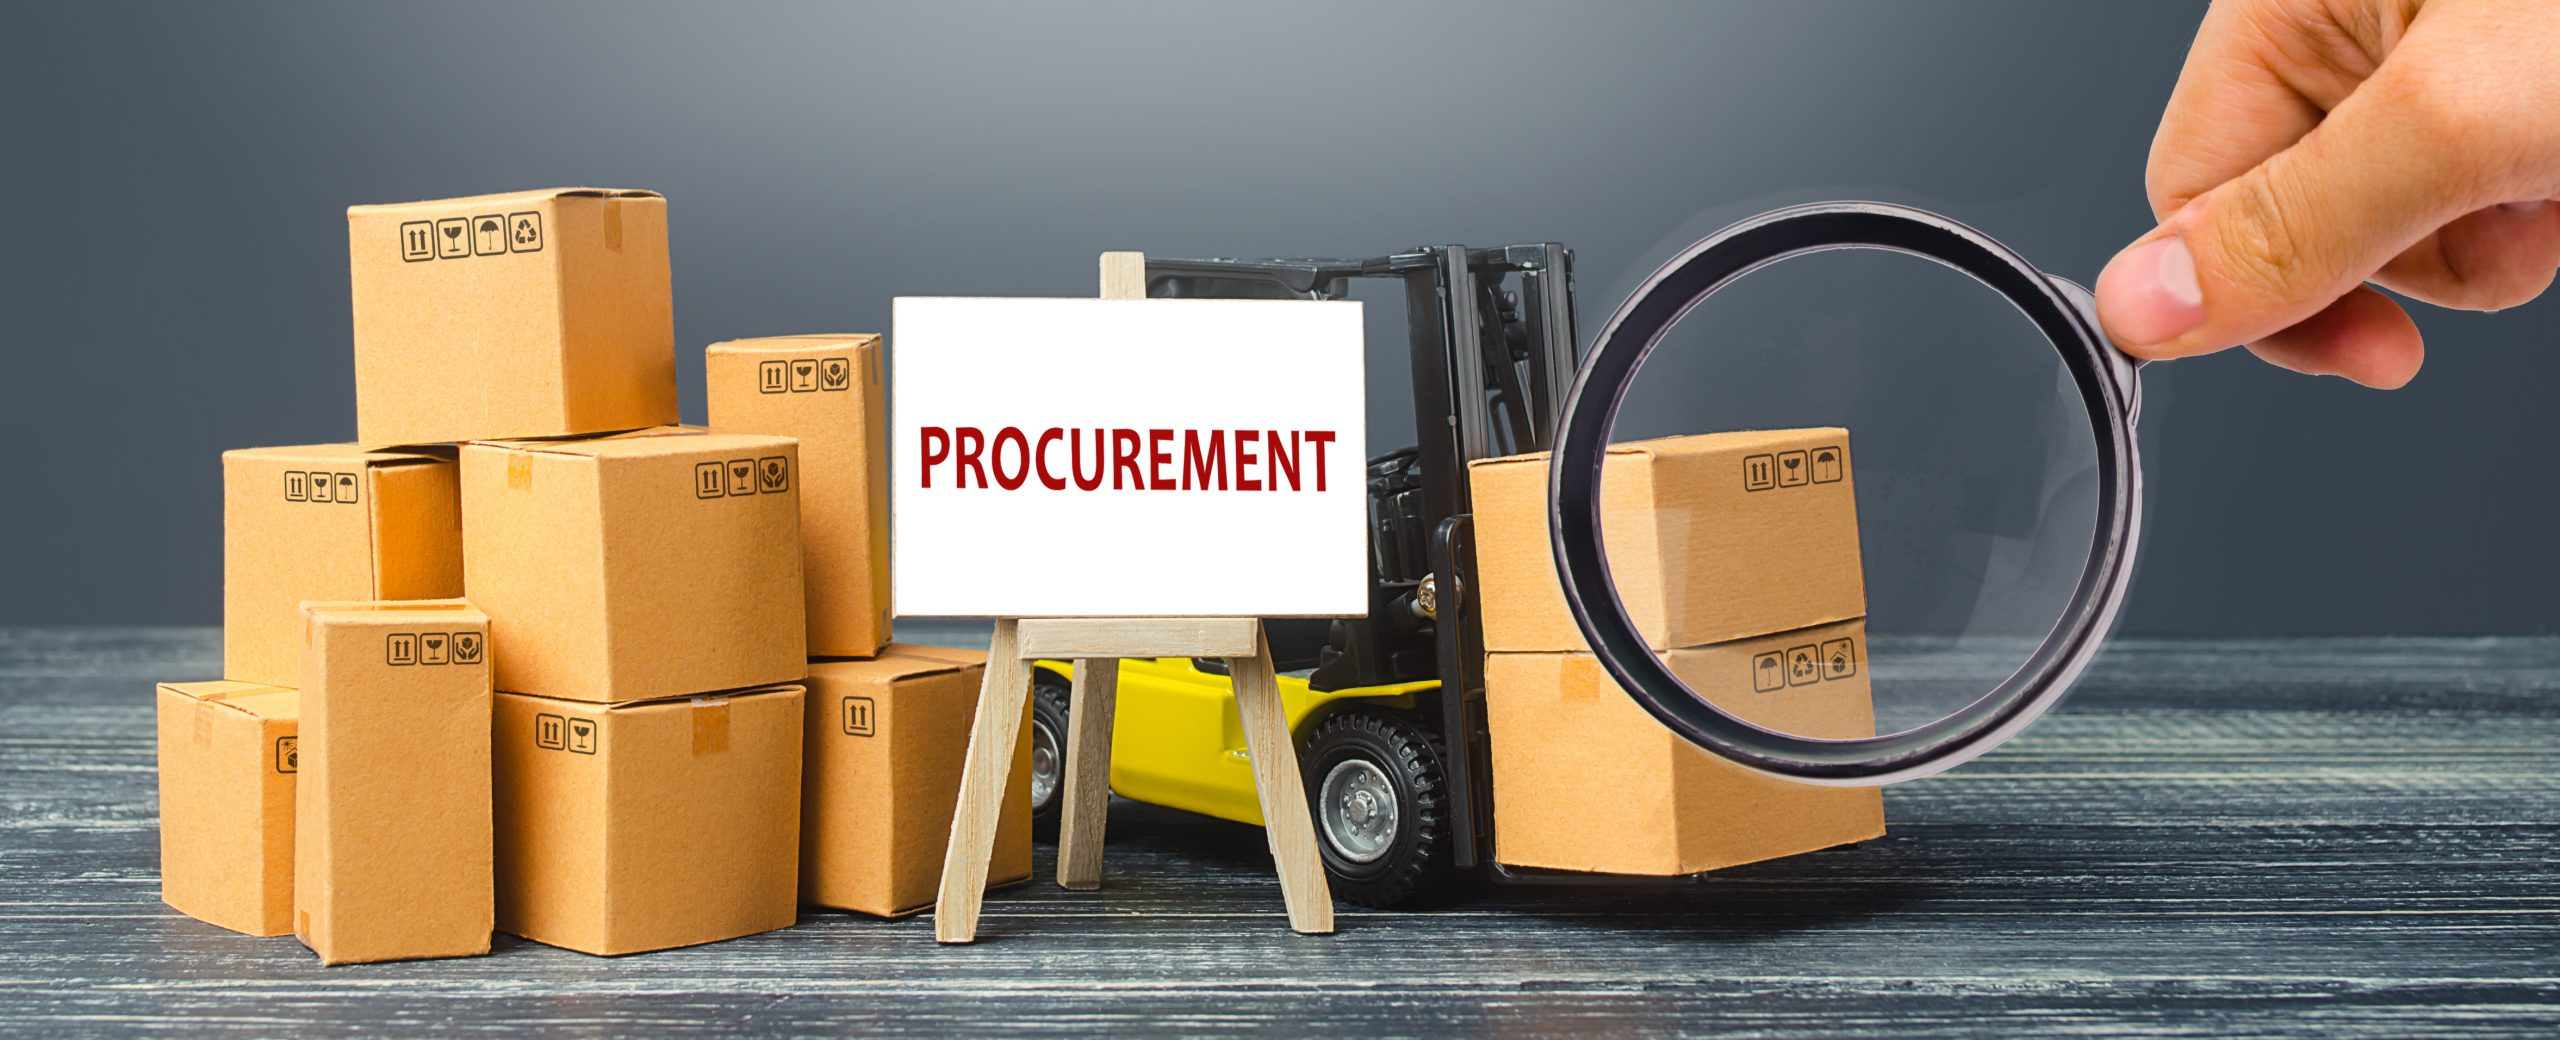 Yellow Forklift truck with cardboard boxes and stand with the word Procurement. Logistics, warehousing, transportation of goods, inspection and storage. Procurement management industry concept.